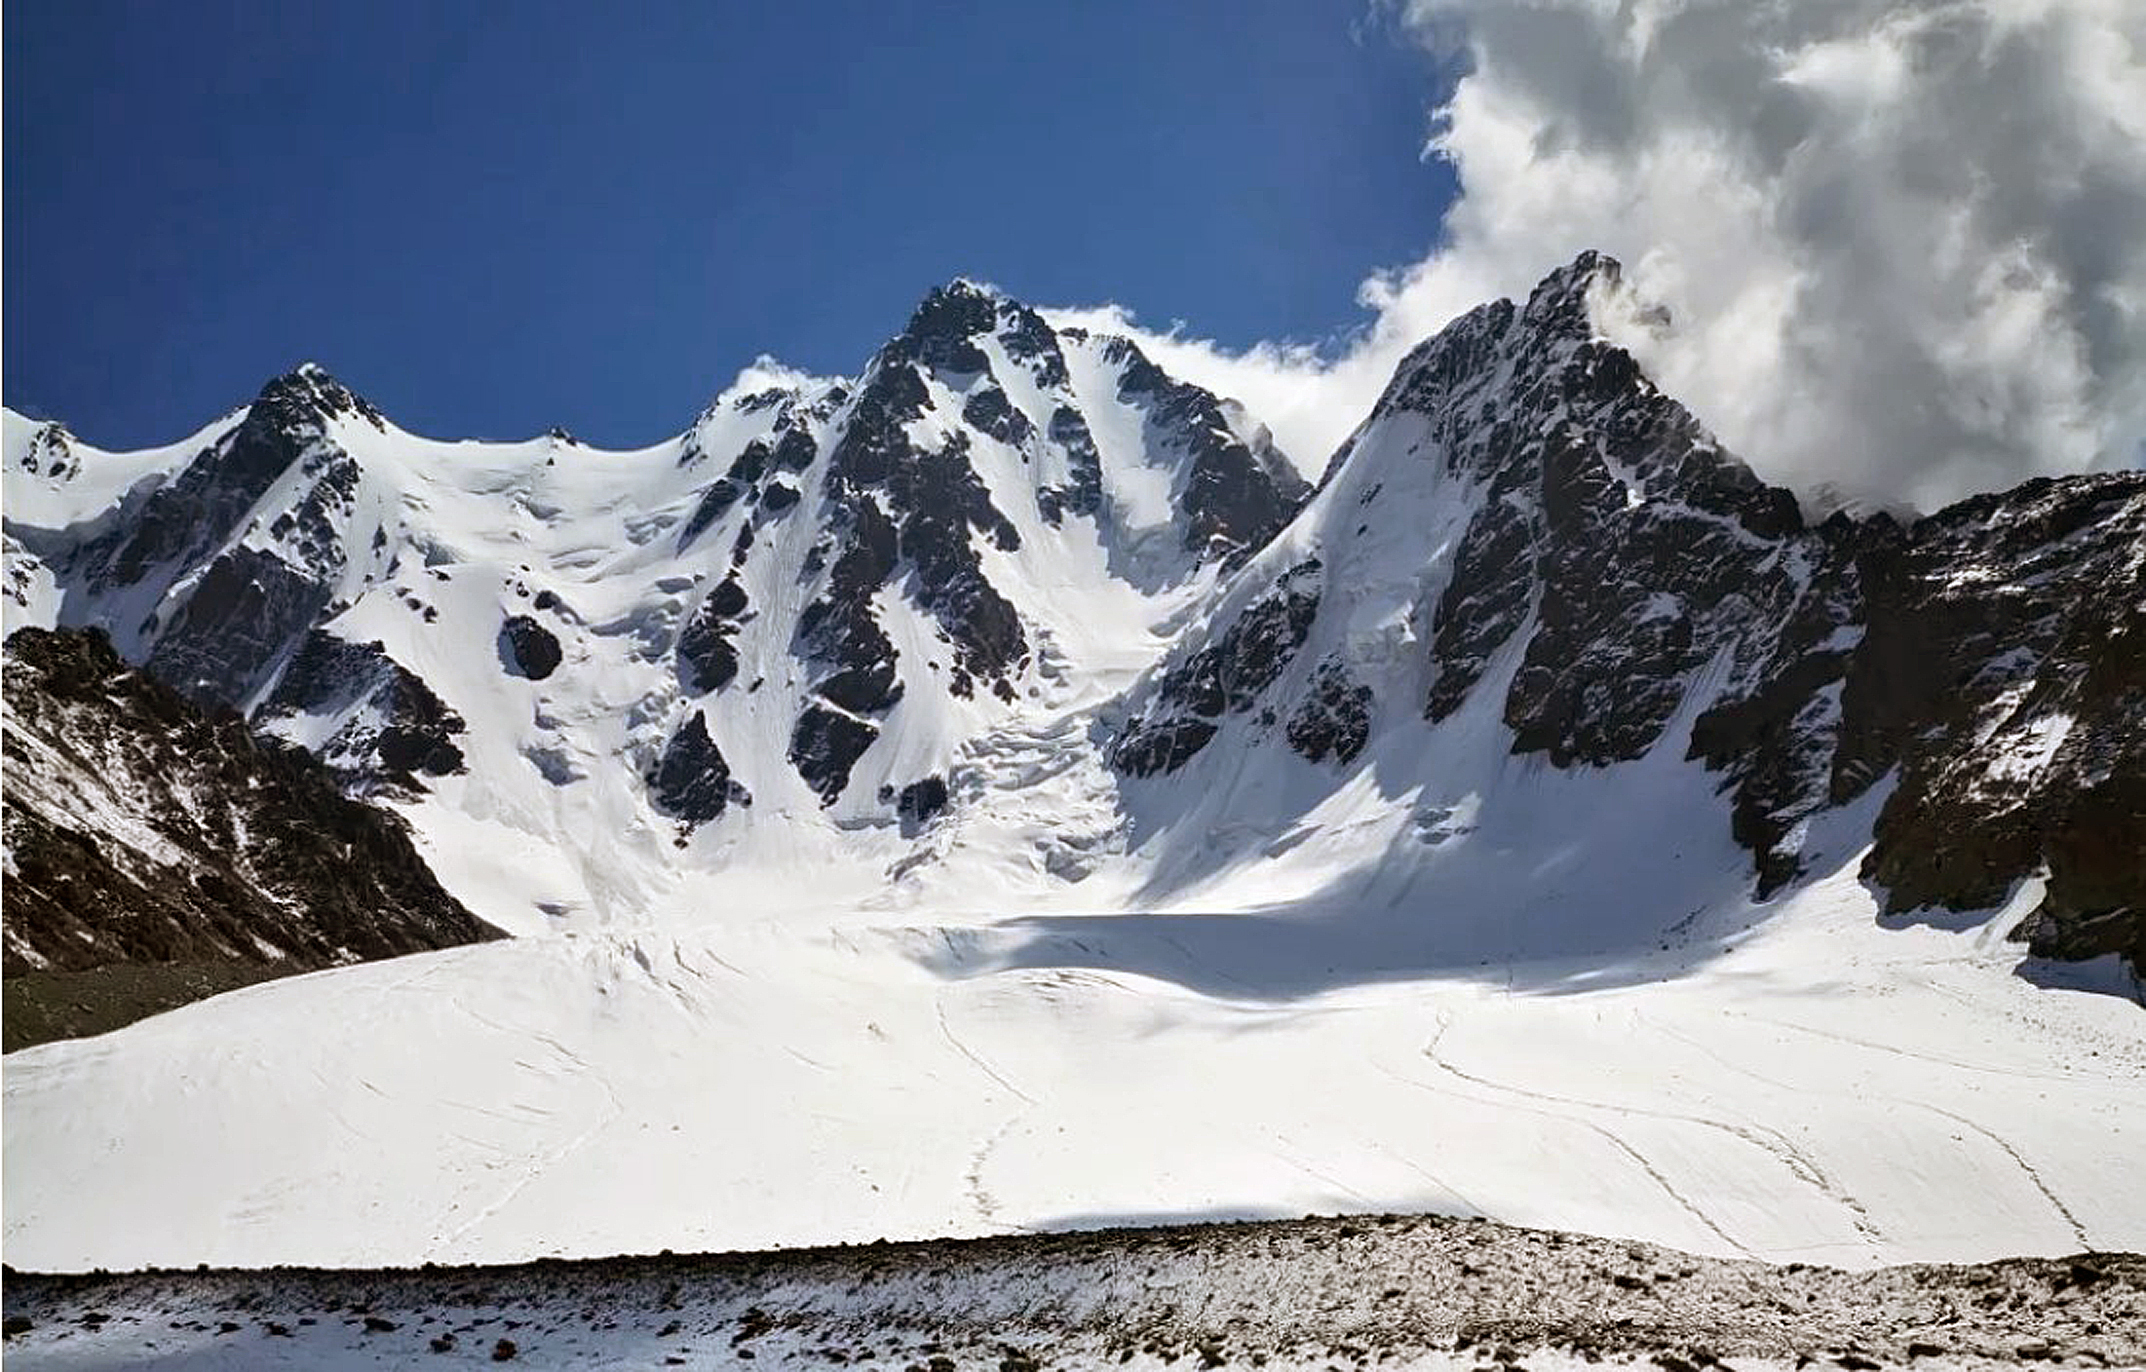 The northwest face of Bogda V and route of 2019 Chinese ascent. Bogda I (5,445m) is off picture to the left.